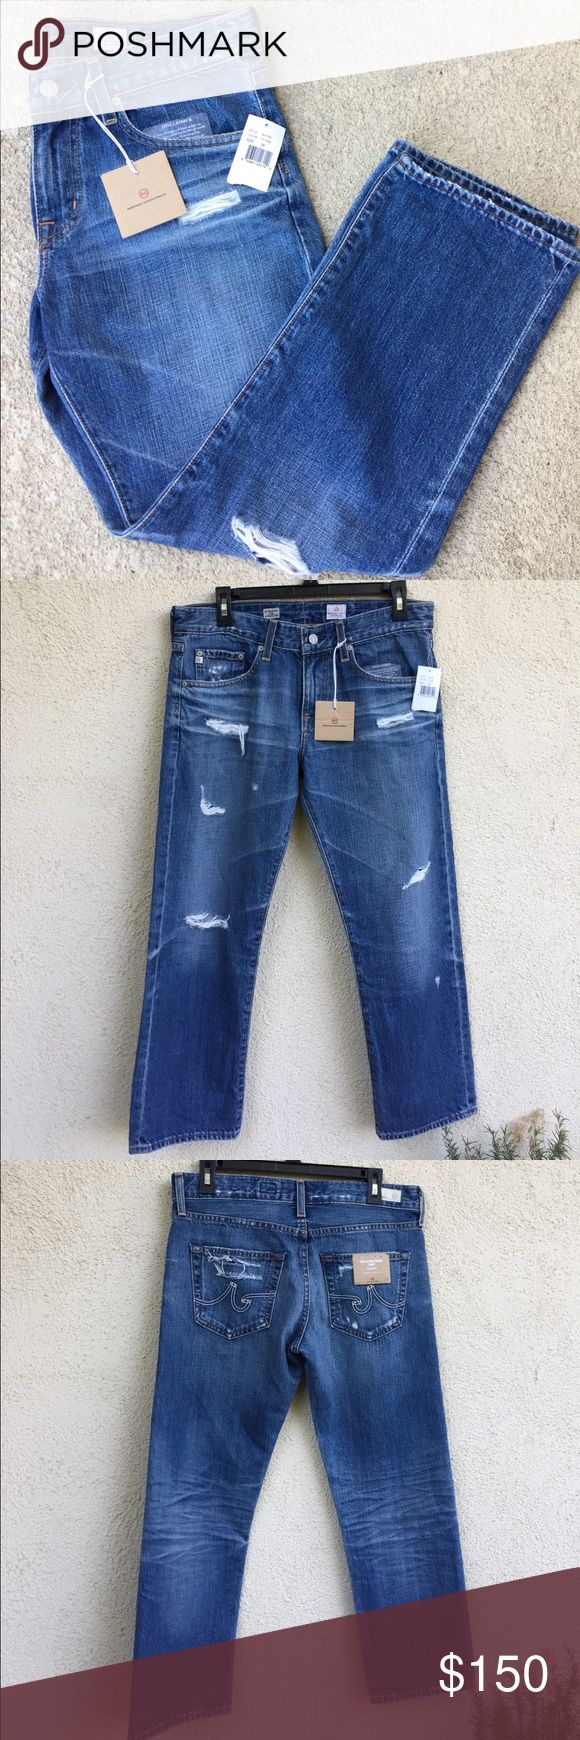 Adriano Goldschmied The Ex-boyfriend crop jeans BRAND NEW WITH TAGS adriano goldschmied Pants Ankle & Cropped